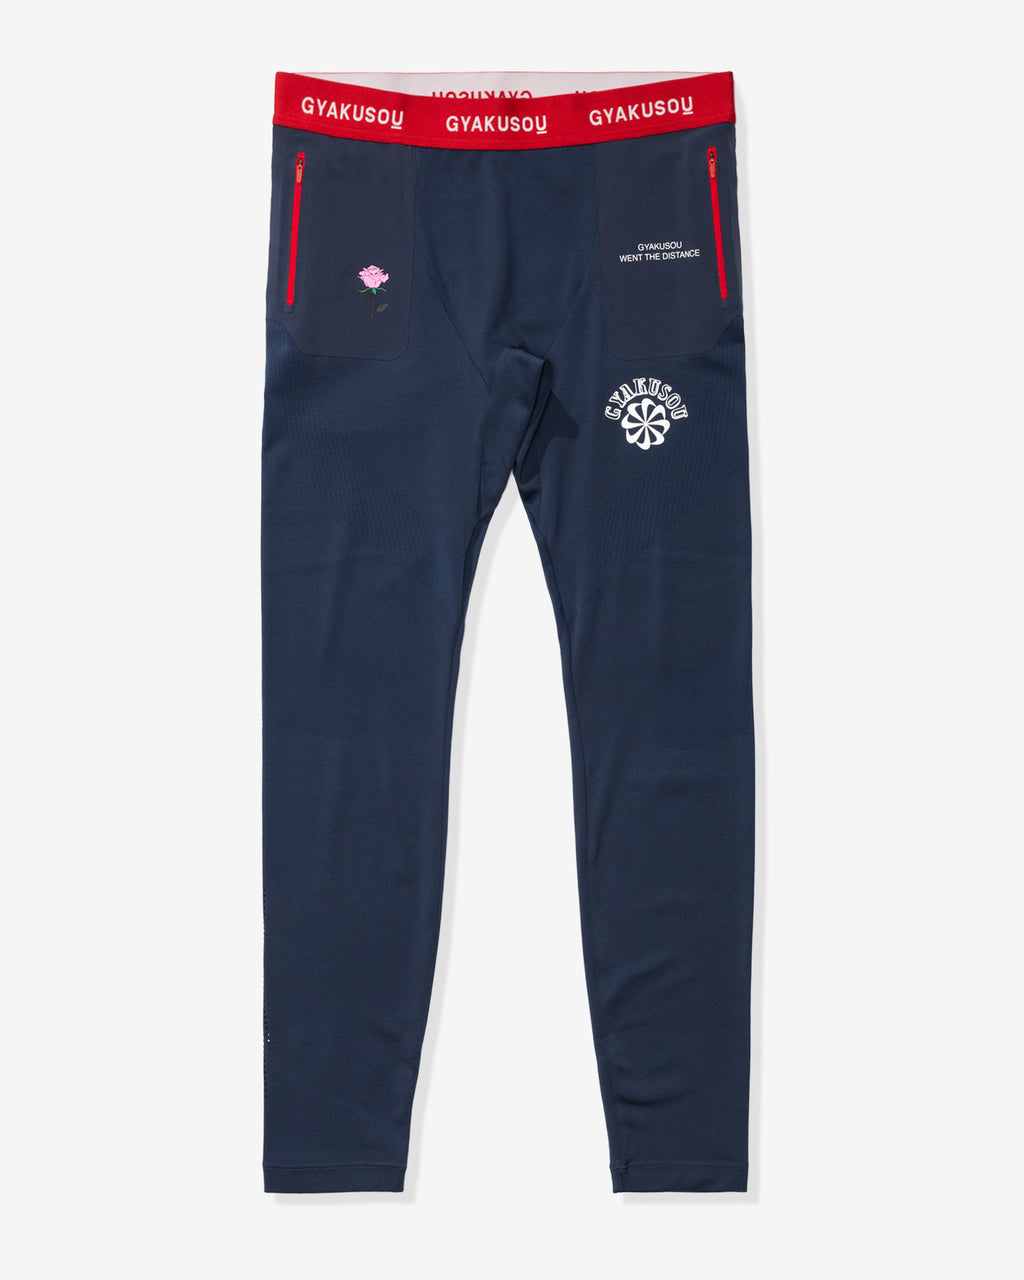 NIKE X GYAKUSOU NRG HELIX TIGHT - THUNDERBLUE/SPORTRED/SAIL